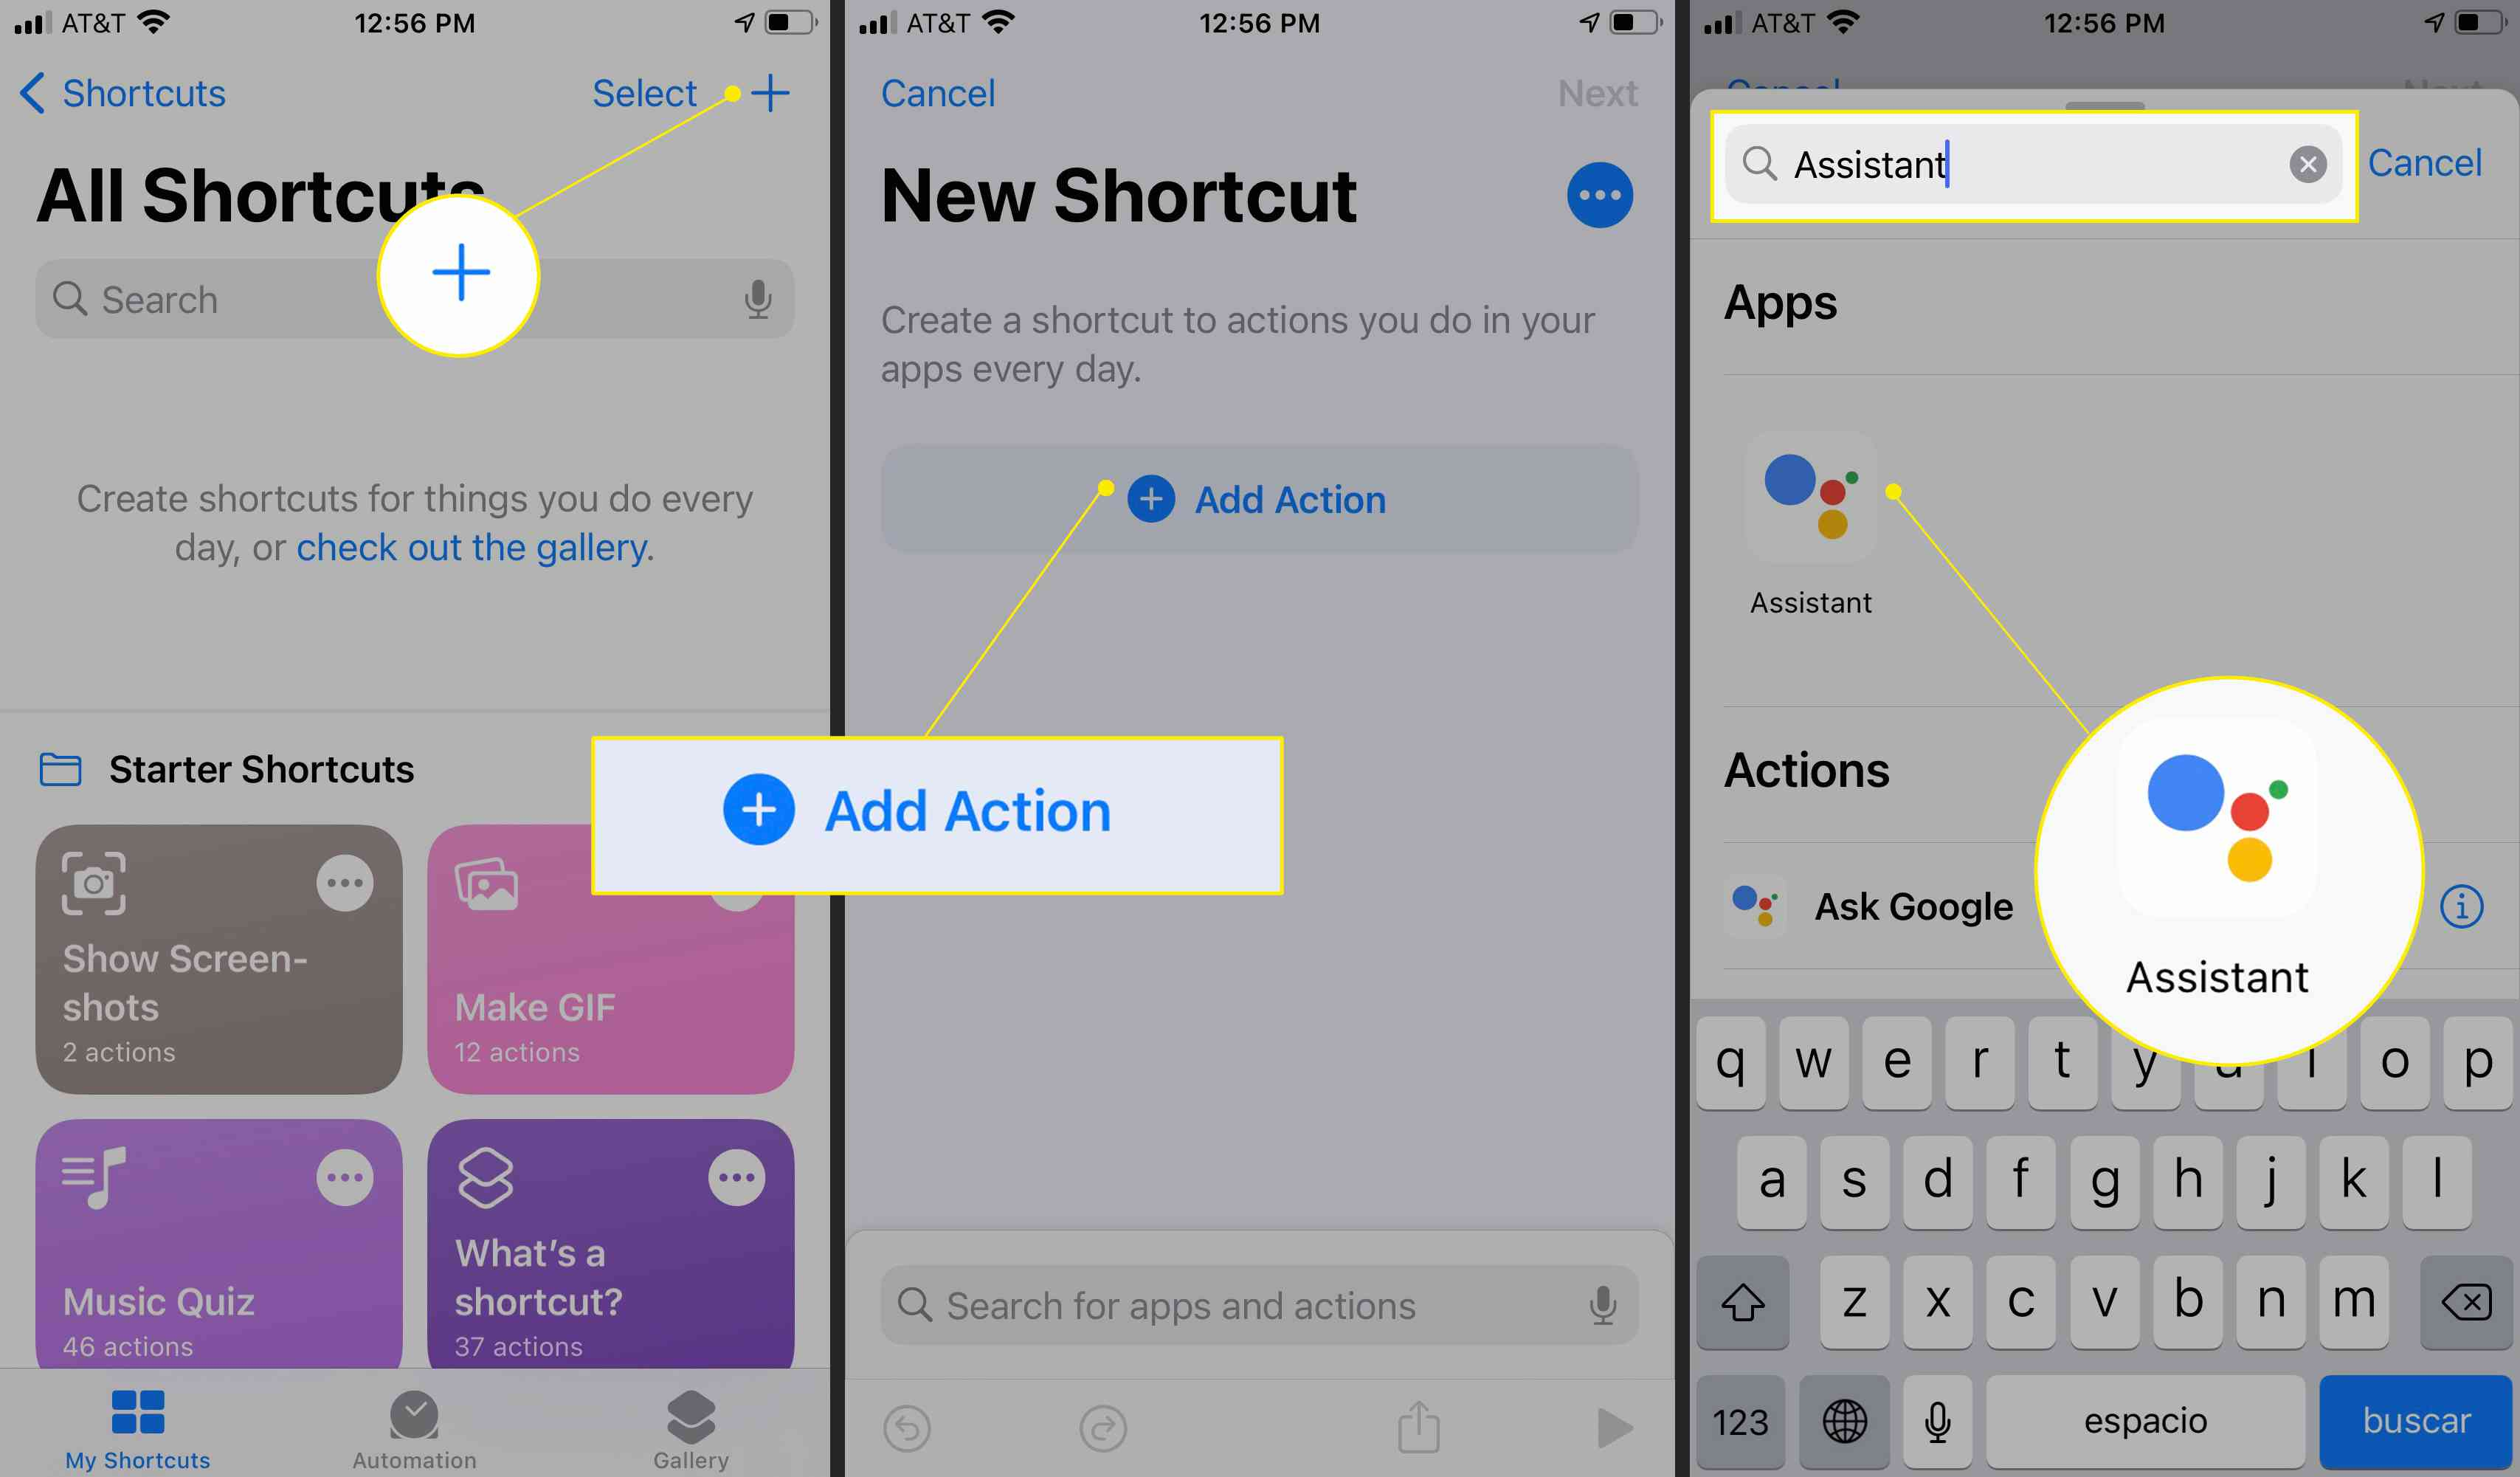 Adding a Shortcut with